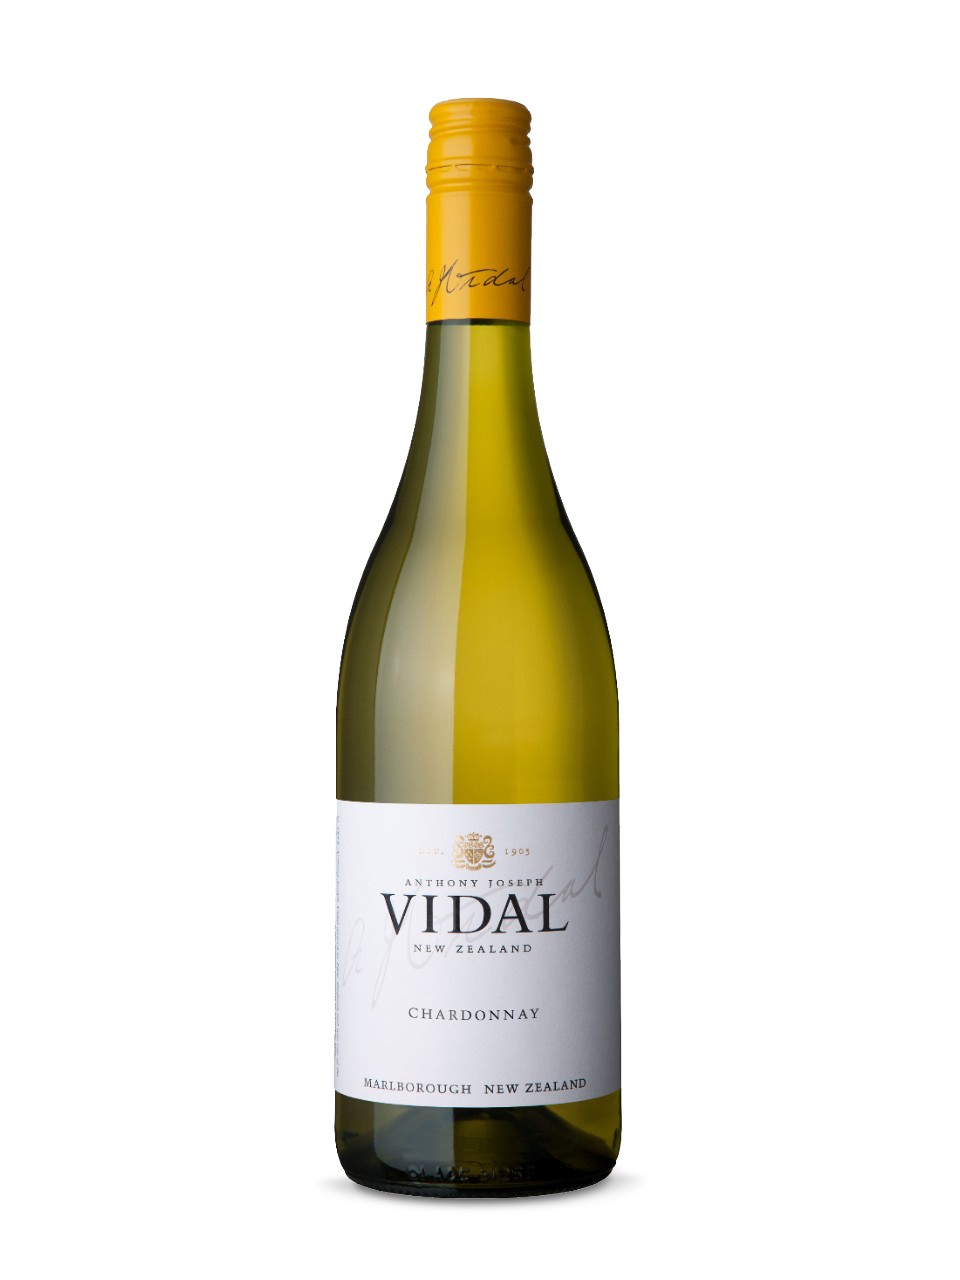 Vidal Estate Marlborough Chardonnay 2018 from LCBO